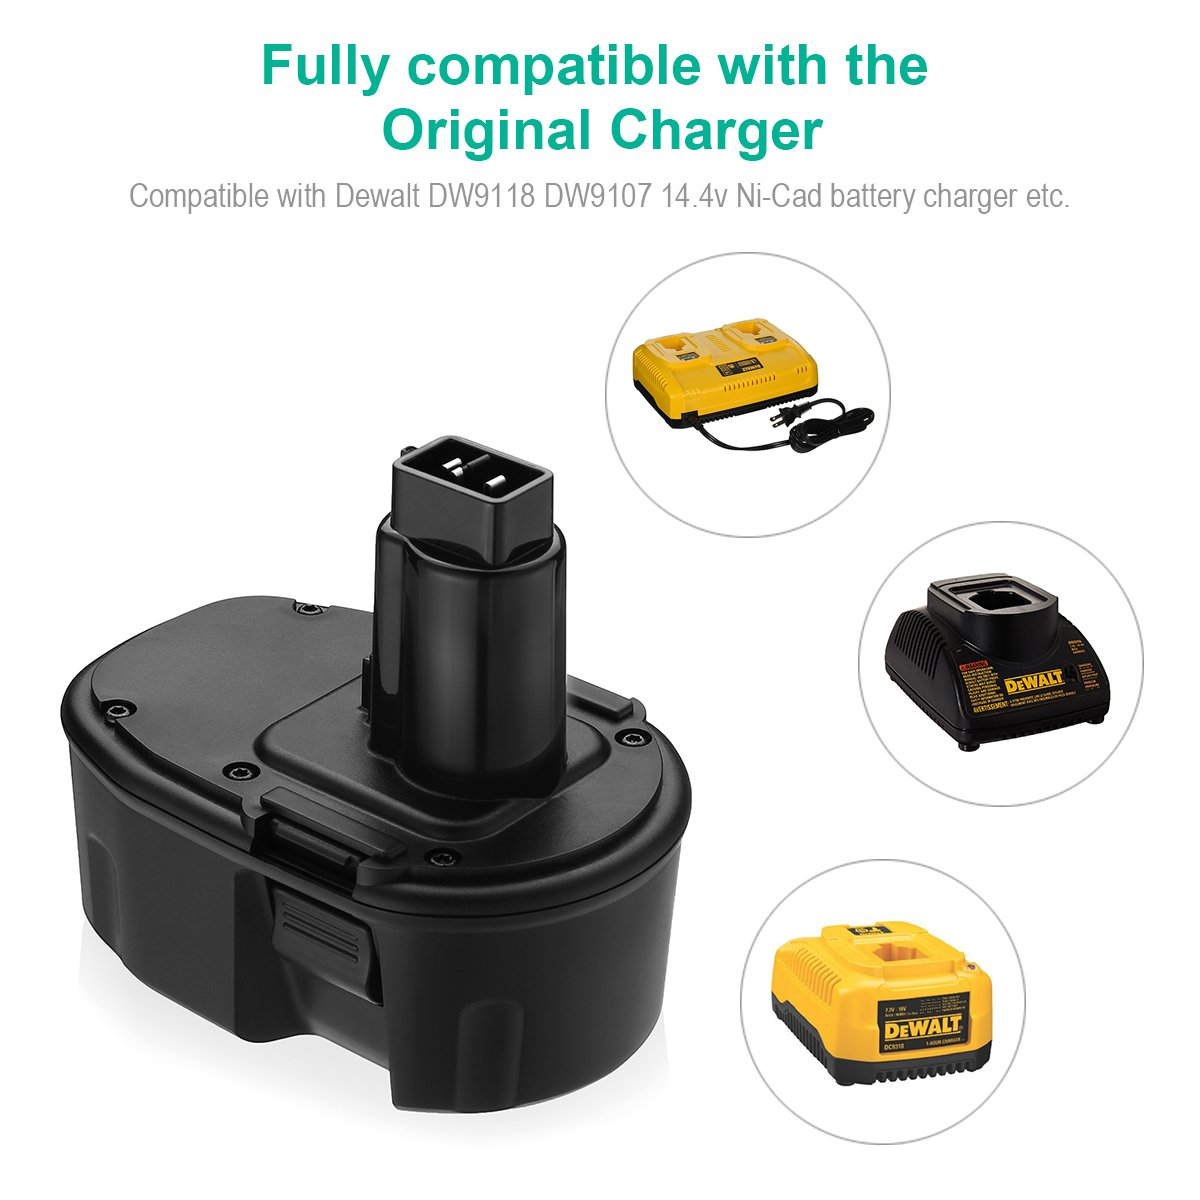 FirstPower 3.5AH 14.4V XRP Battery Replacement for Dewalt DC9091 DW9091 DW9094 DE9038 DE9091 DE9092 DEWALT Power Tool Battery DEWALT XRP DC DW DE Series ( 2 Pack ) by FirstPower (Image #7)